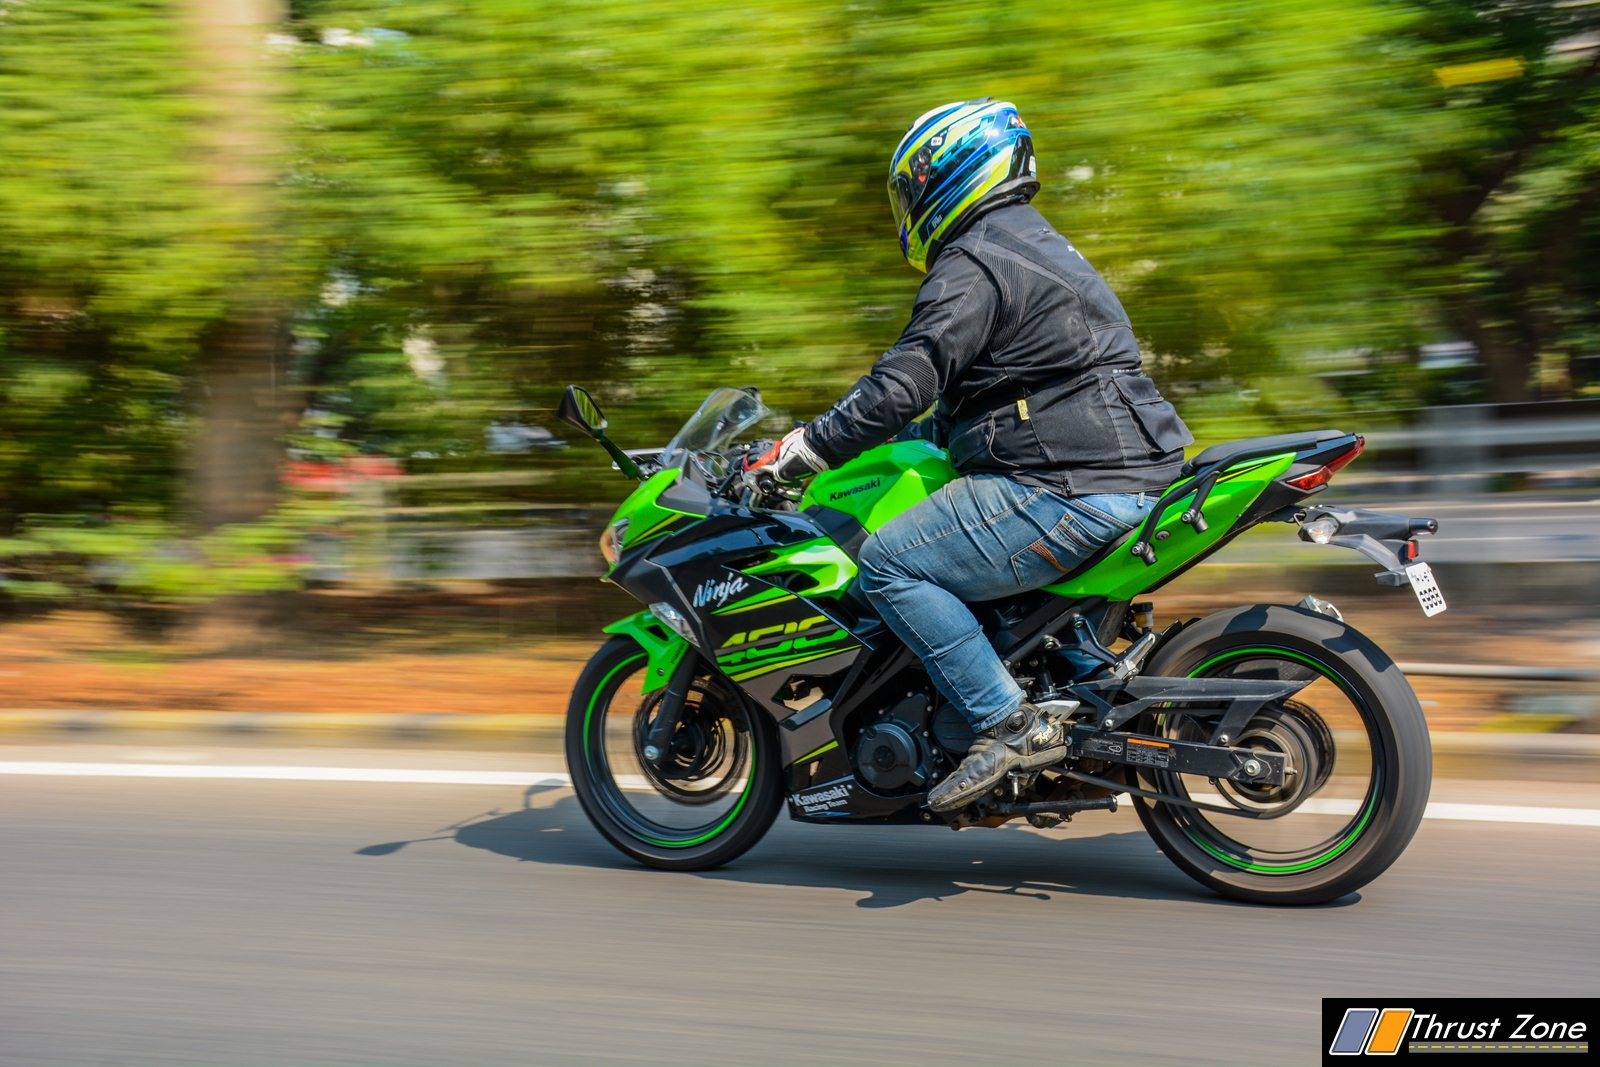 2018-Kawasaki-Ninja-400-India-Review-7